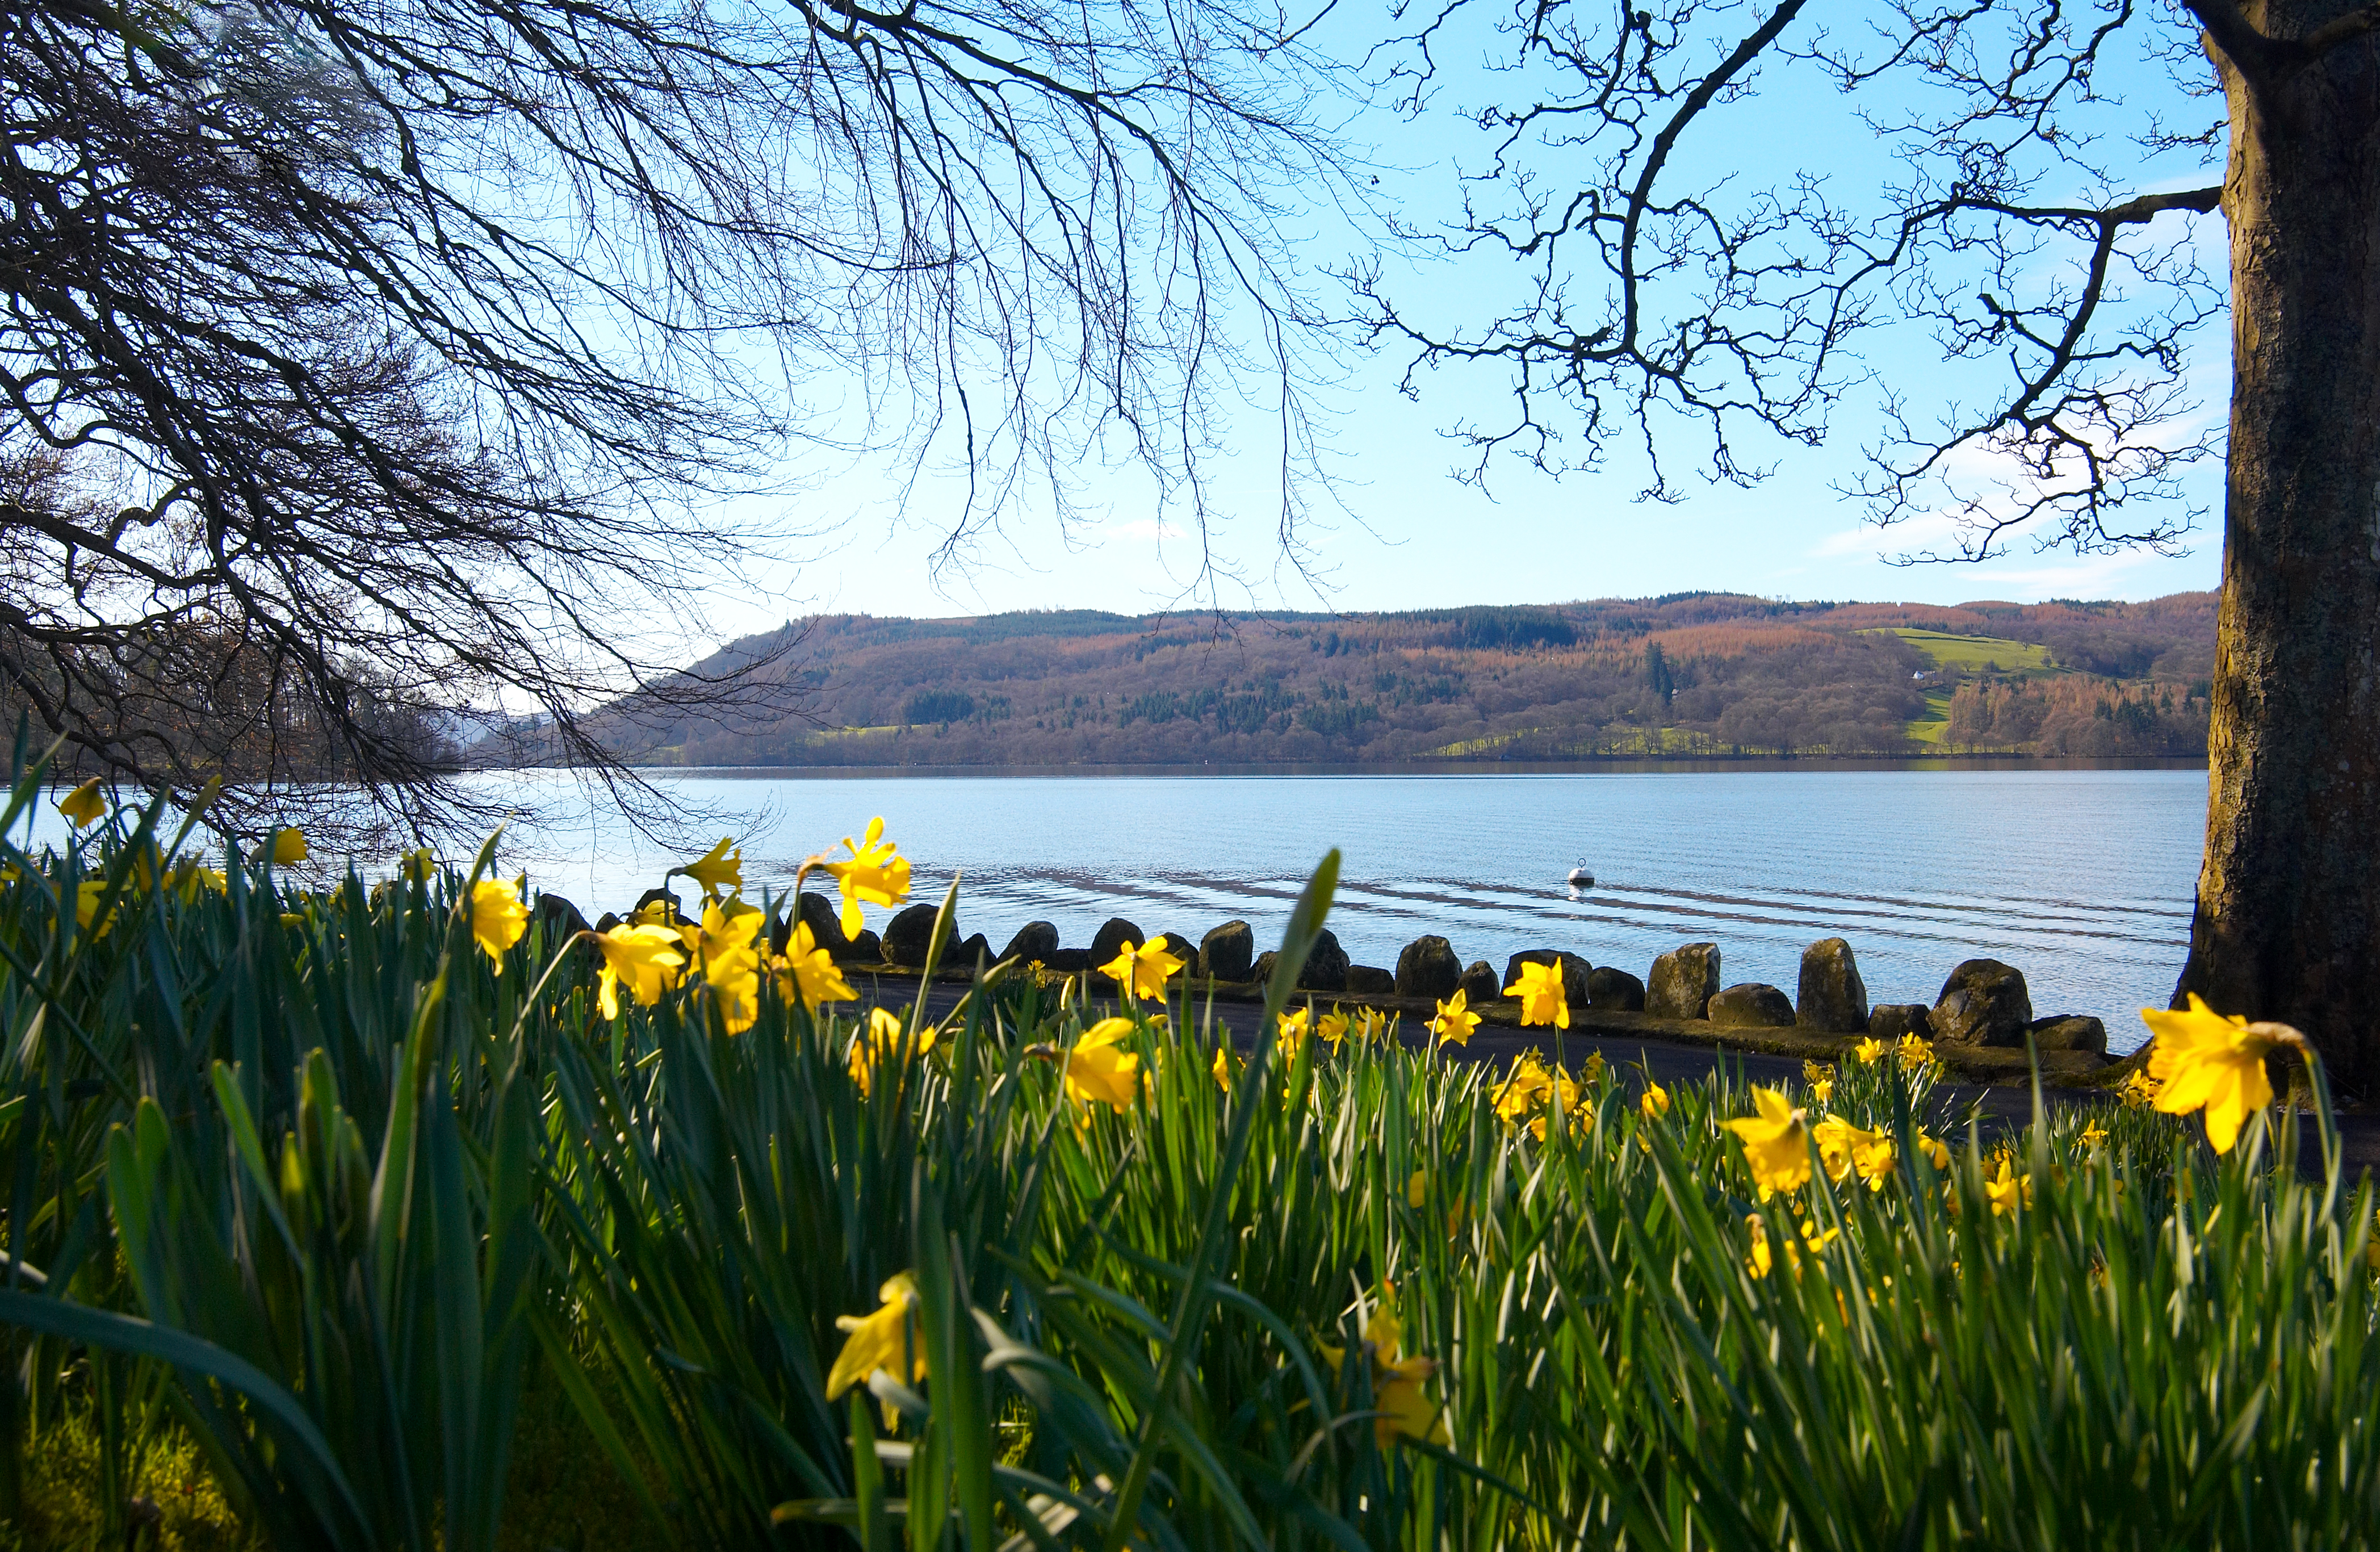 Walk along the shores of Lake Windermere at Springtime and enjoy these wonderful views, while pretty daffodils bob in the breeze at your feet.